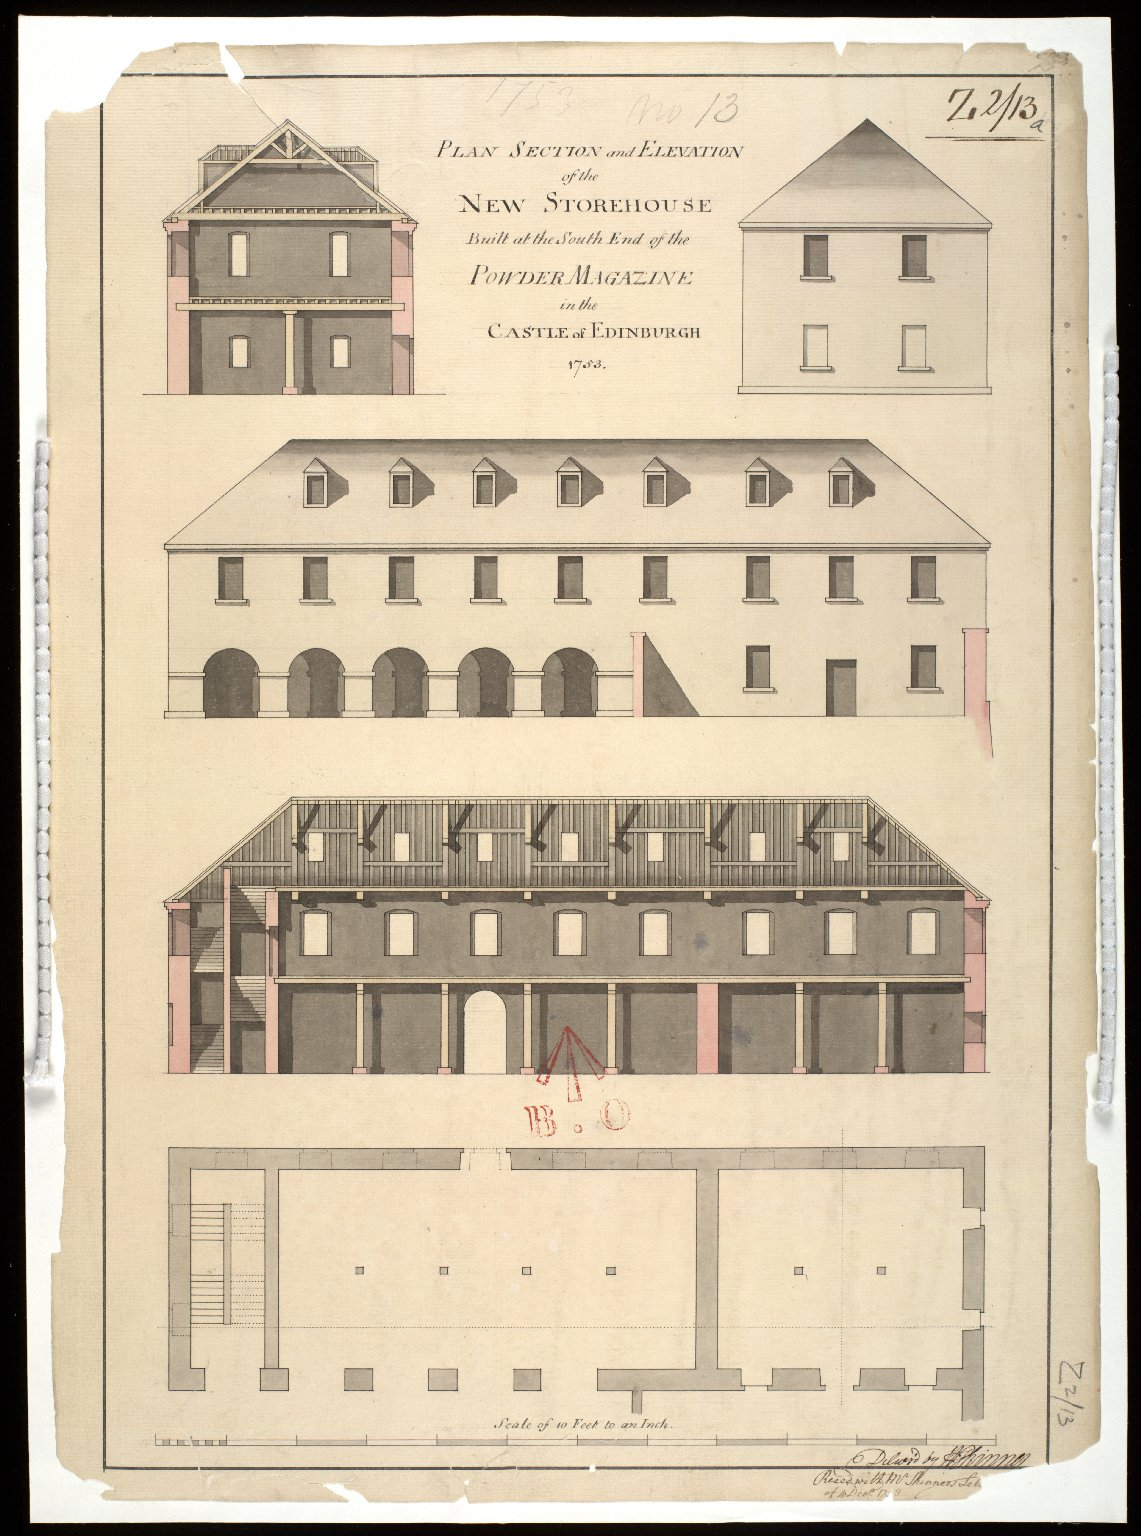 Plan section and elevation of the new storehouse built at the south end of the powder magazine in the Castle of Edinburgh 1753 [1 of 1]